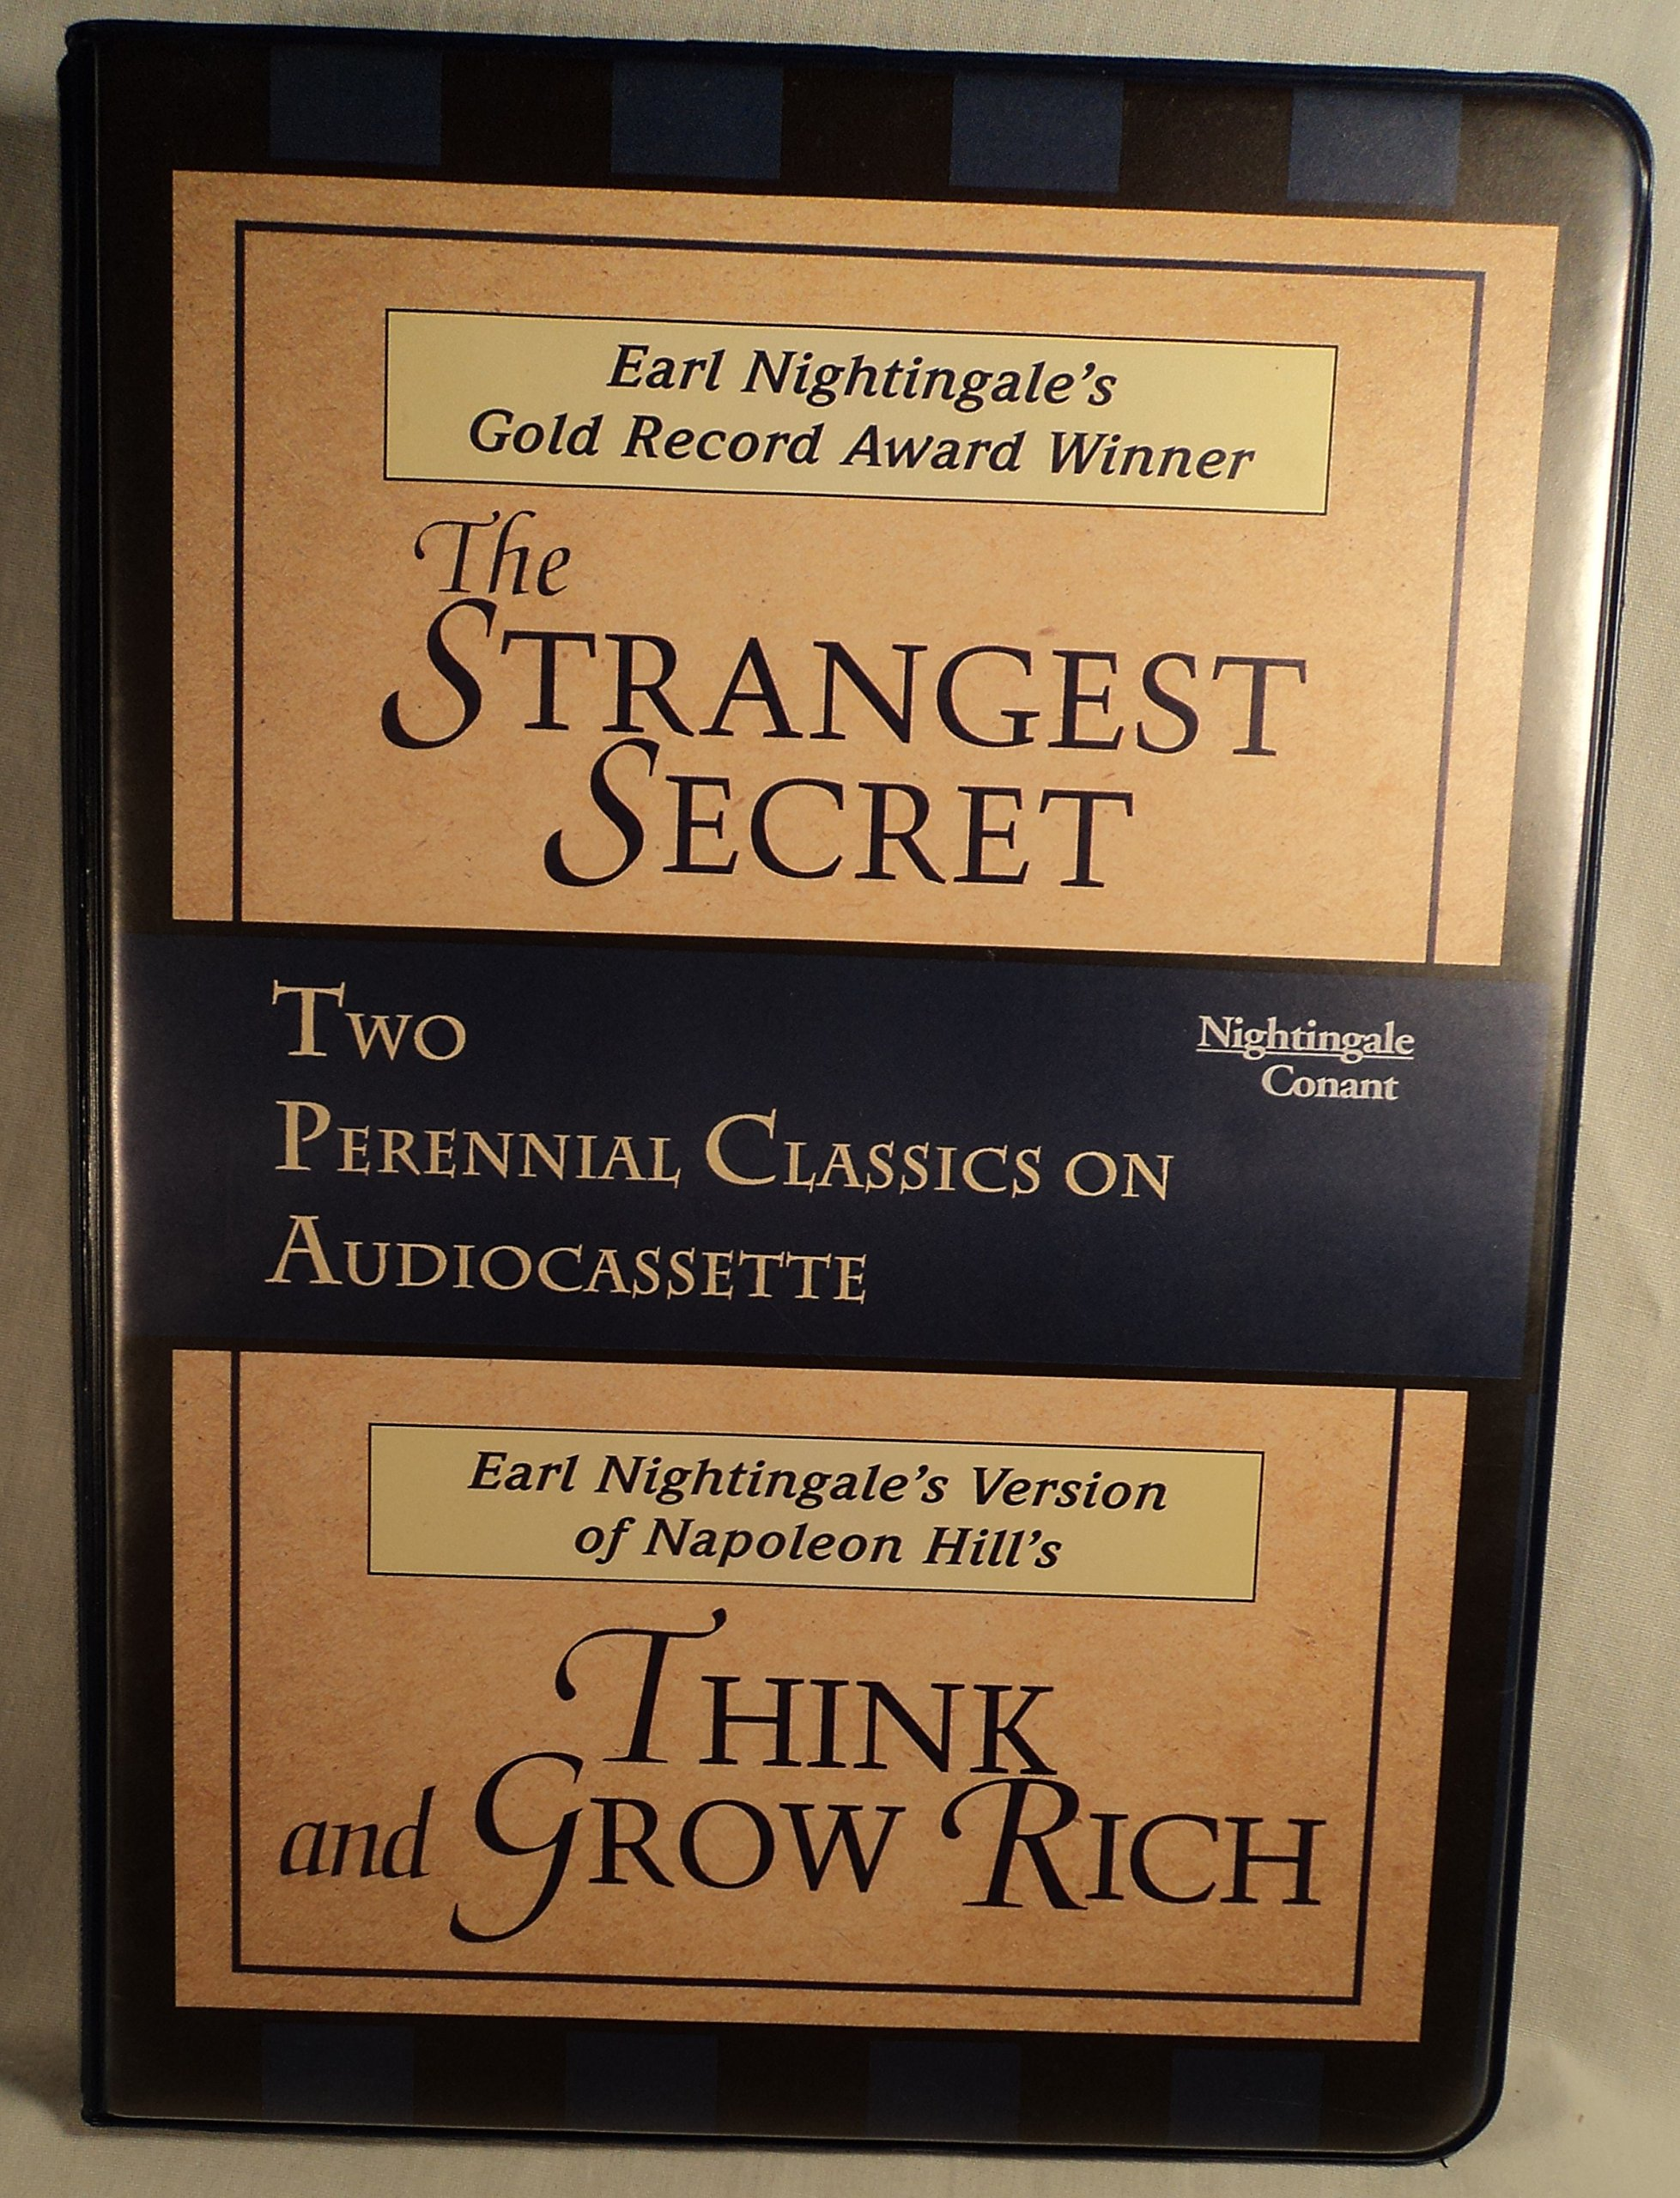 Earl Nightingales The strangest secret & Think and grow Rich- 2 perennial classics on audiocassette (The Strangest Secret & think and grow rich) by Nightingale Conant